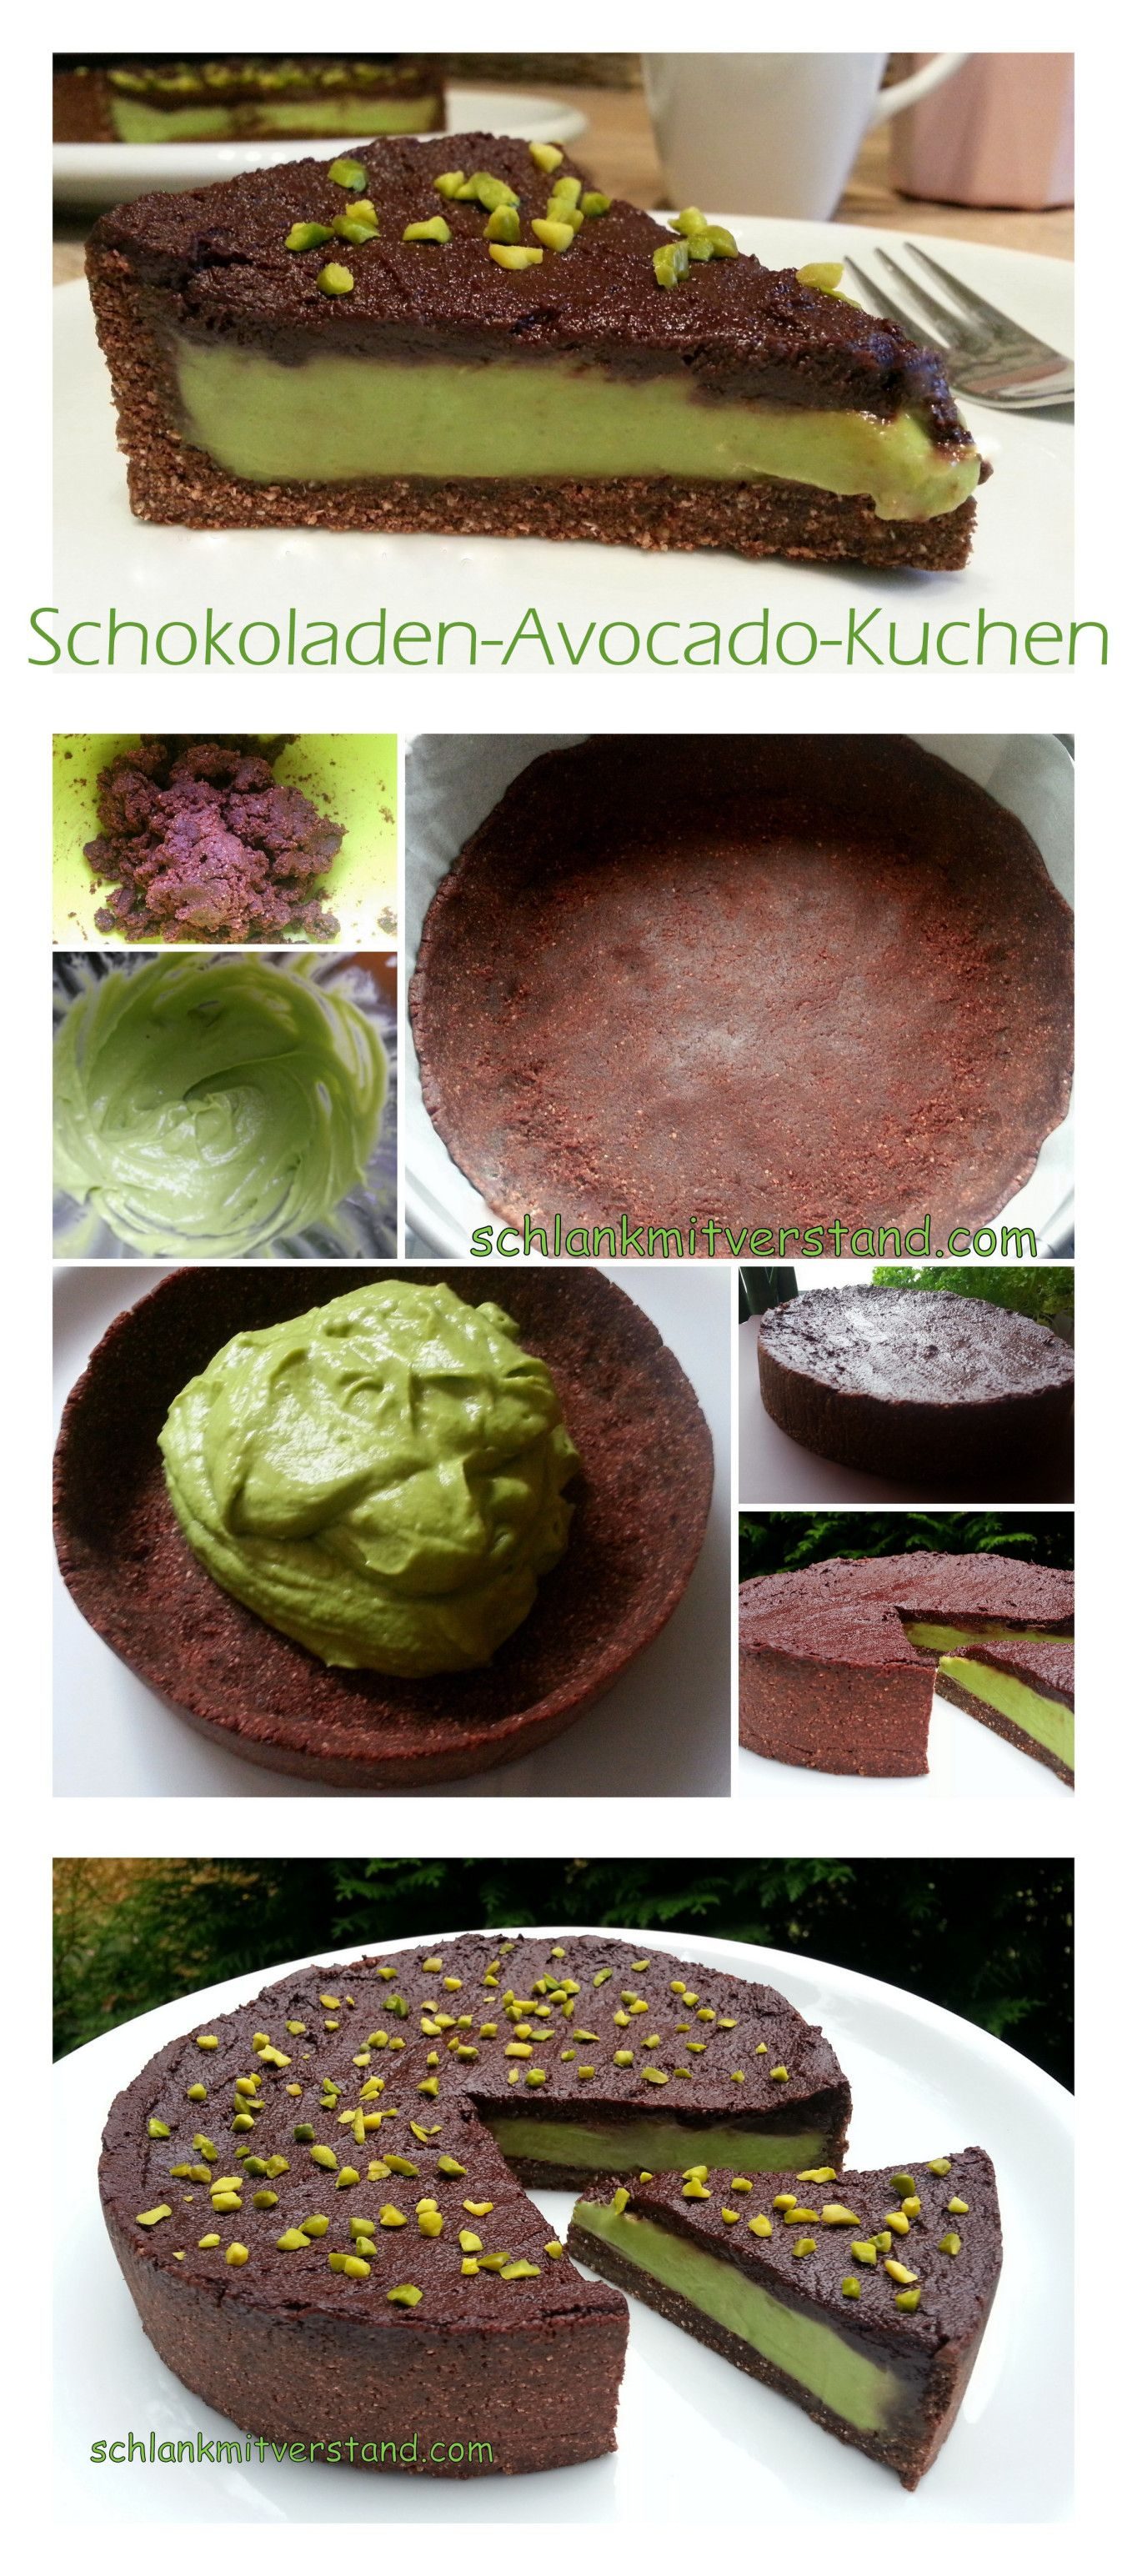 Avocado Kuchen Vegan Schokoladen Avocado Kuchen Low Carb Avocados